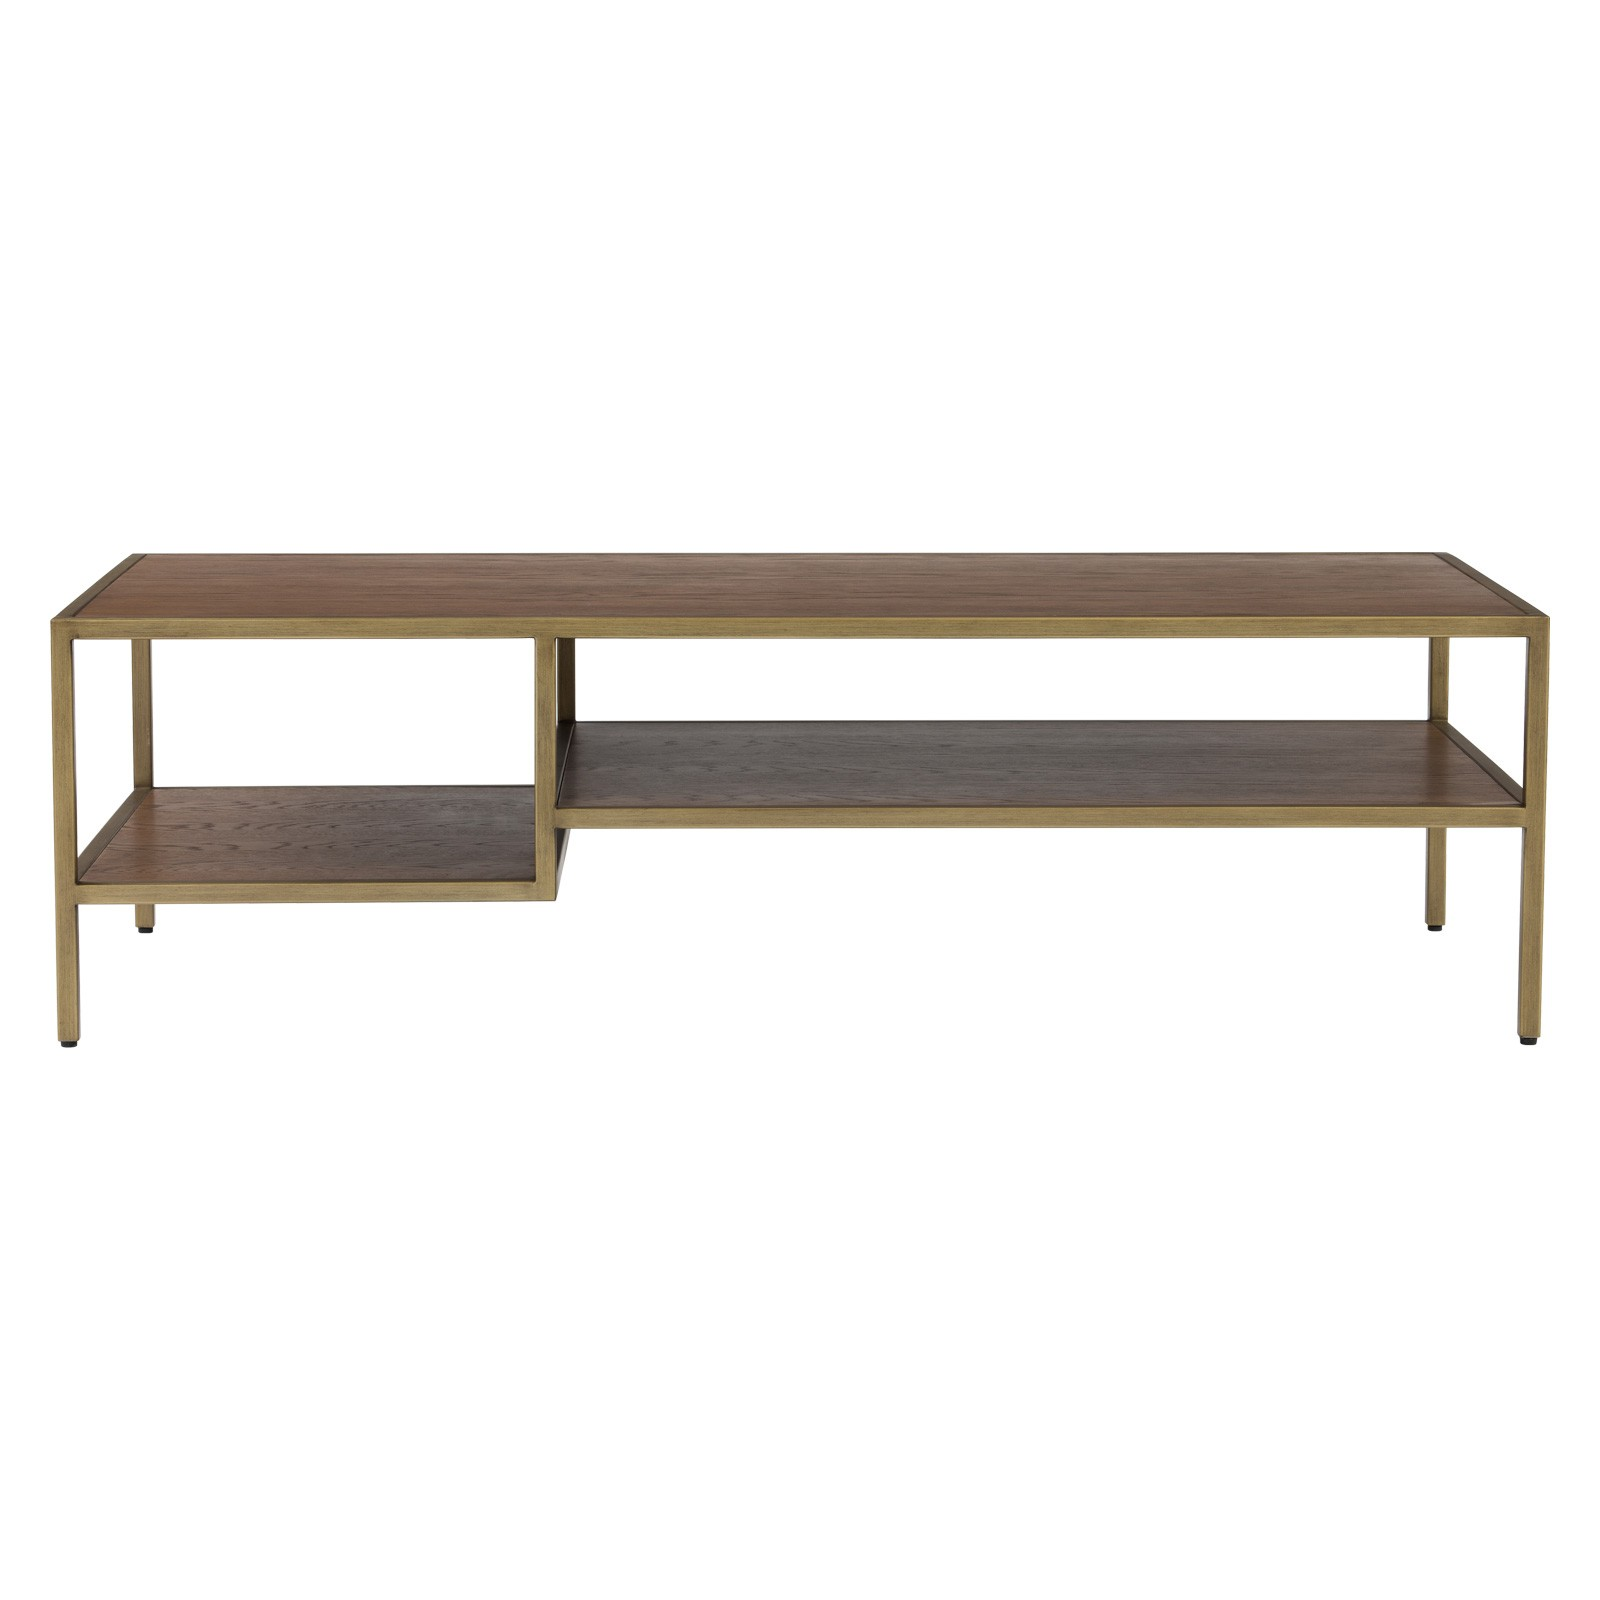 Willingham Wood & Metal Coffee Table, 140cm